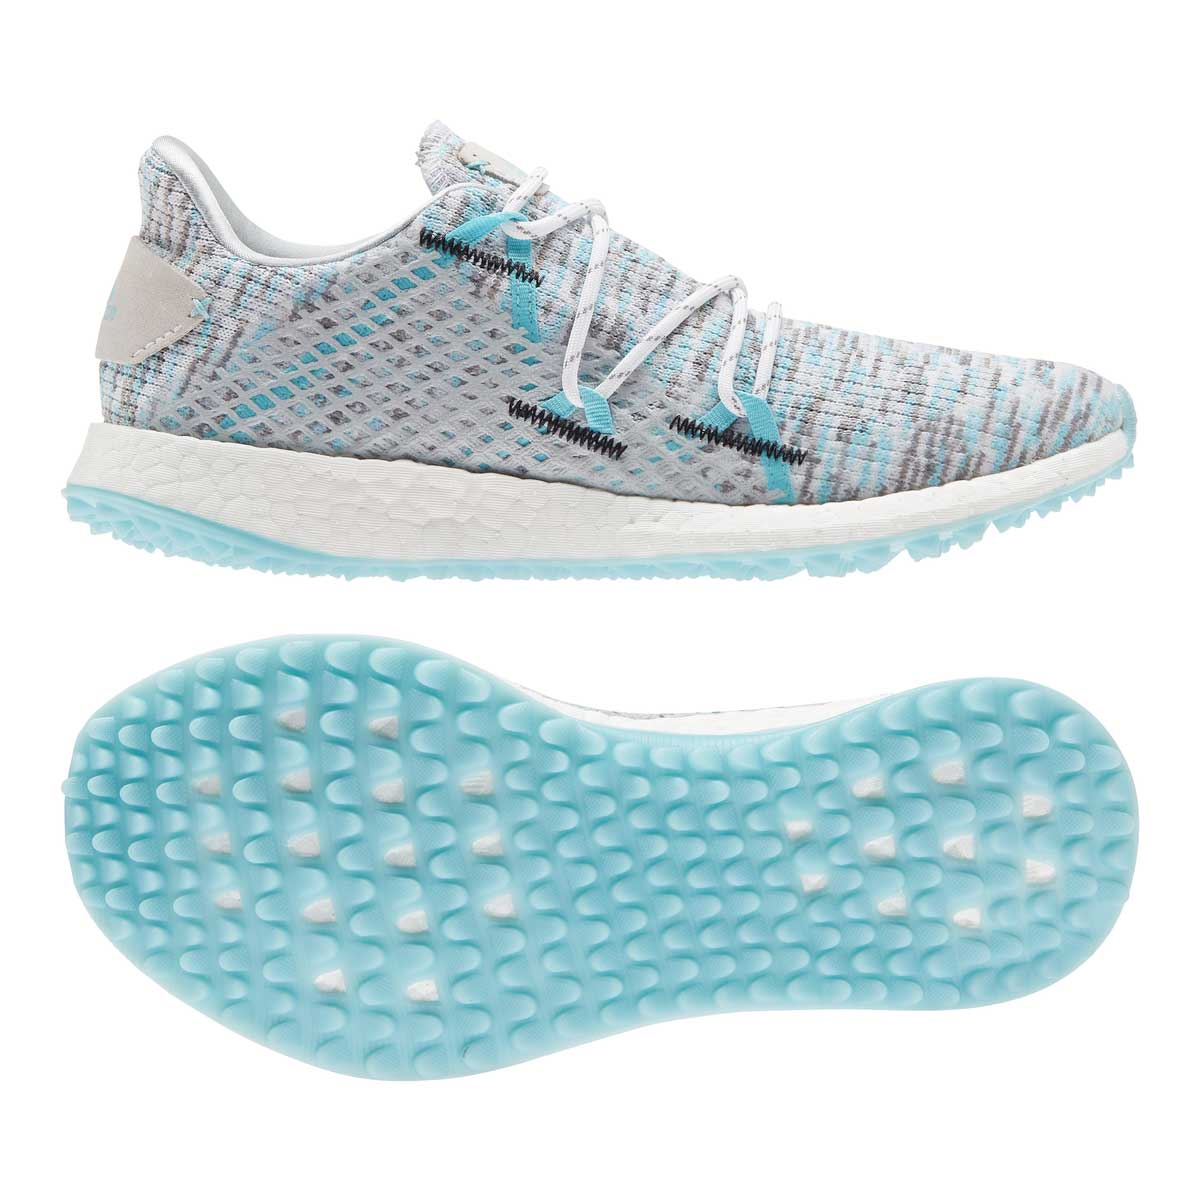 Adidas Women's Crossknit DPR White/Hazy Sky Spikeless Golf Shoe